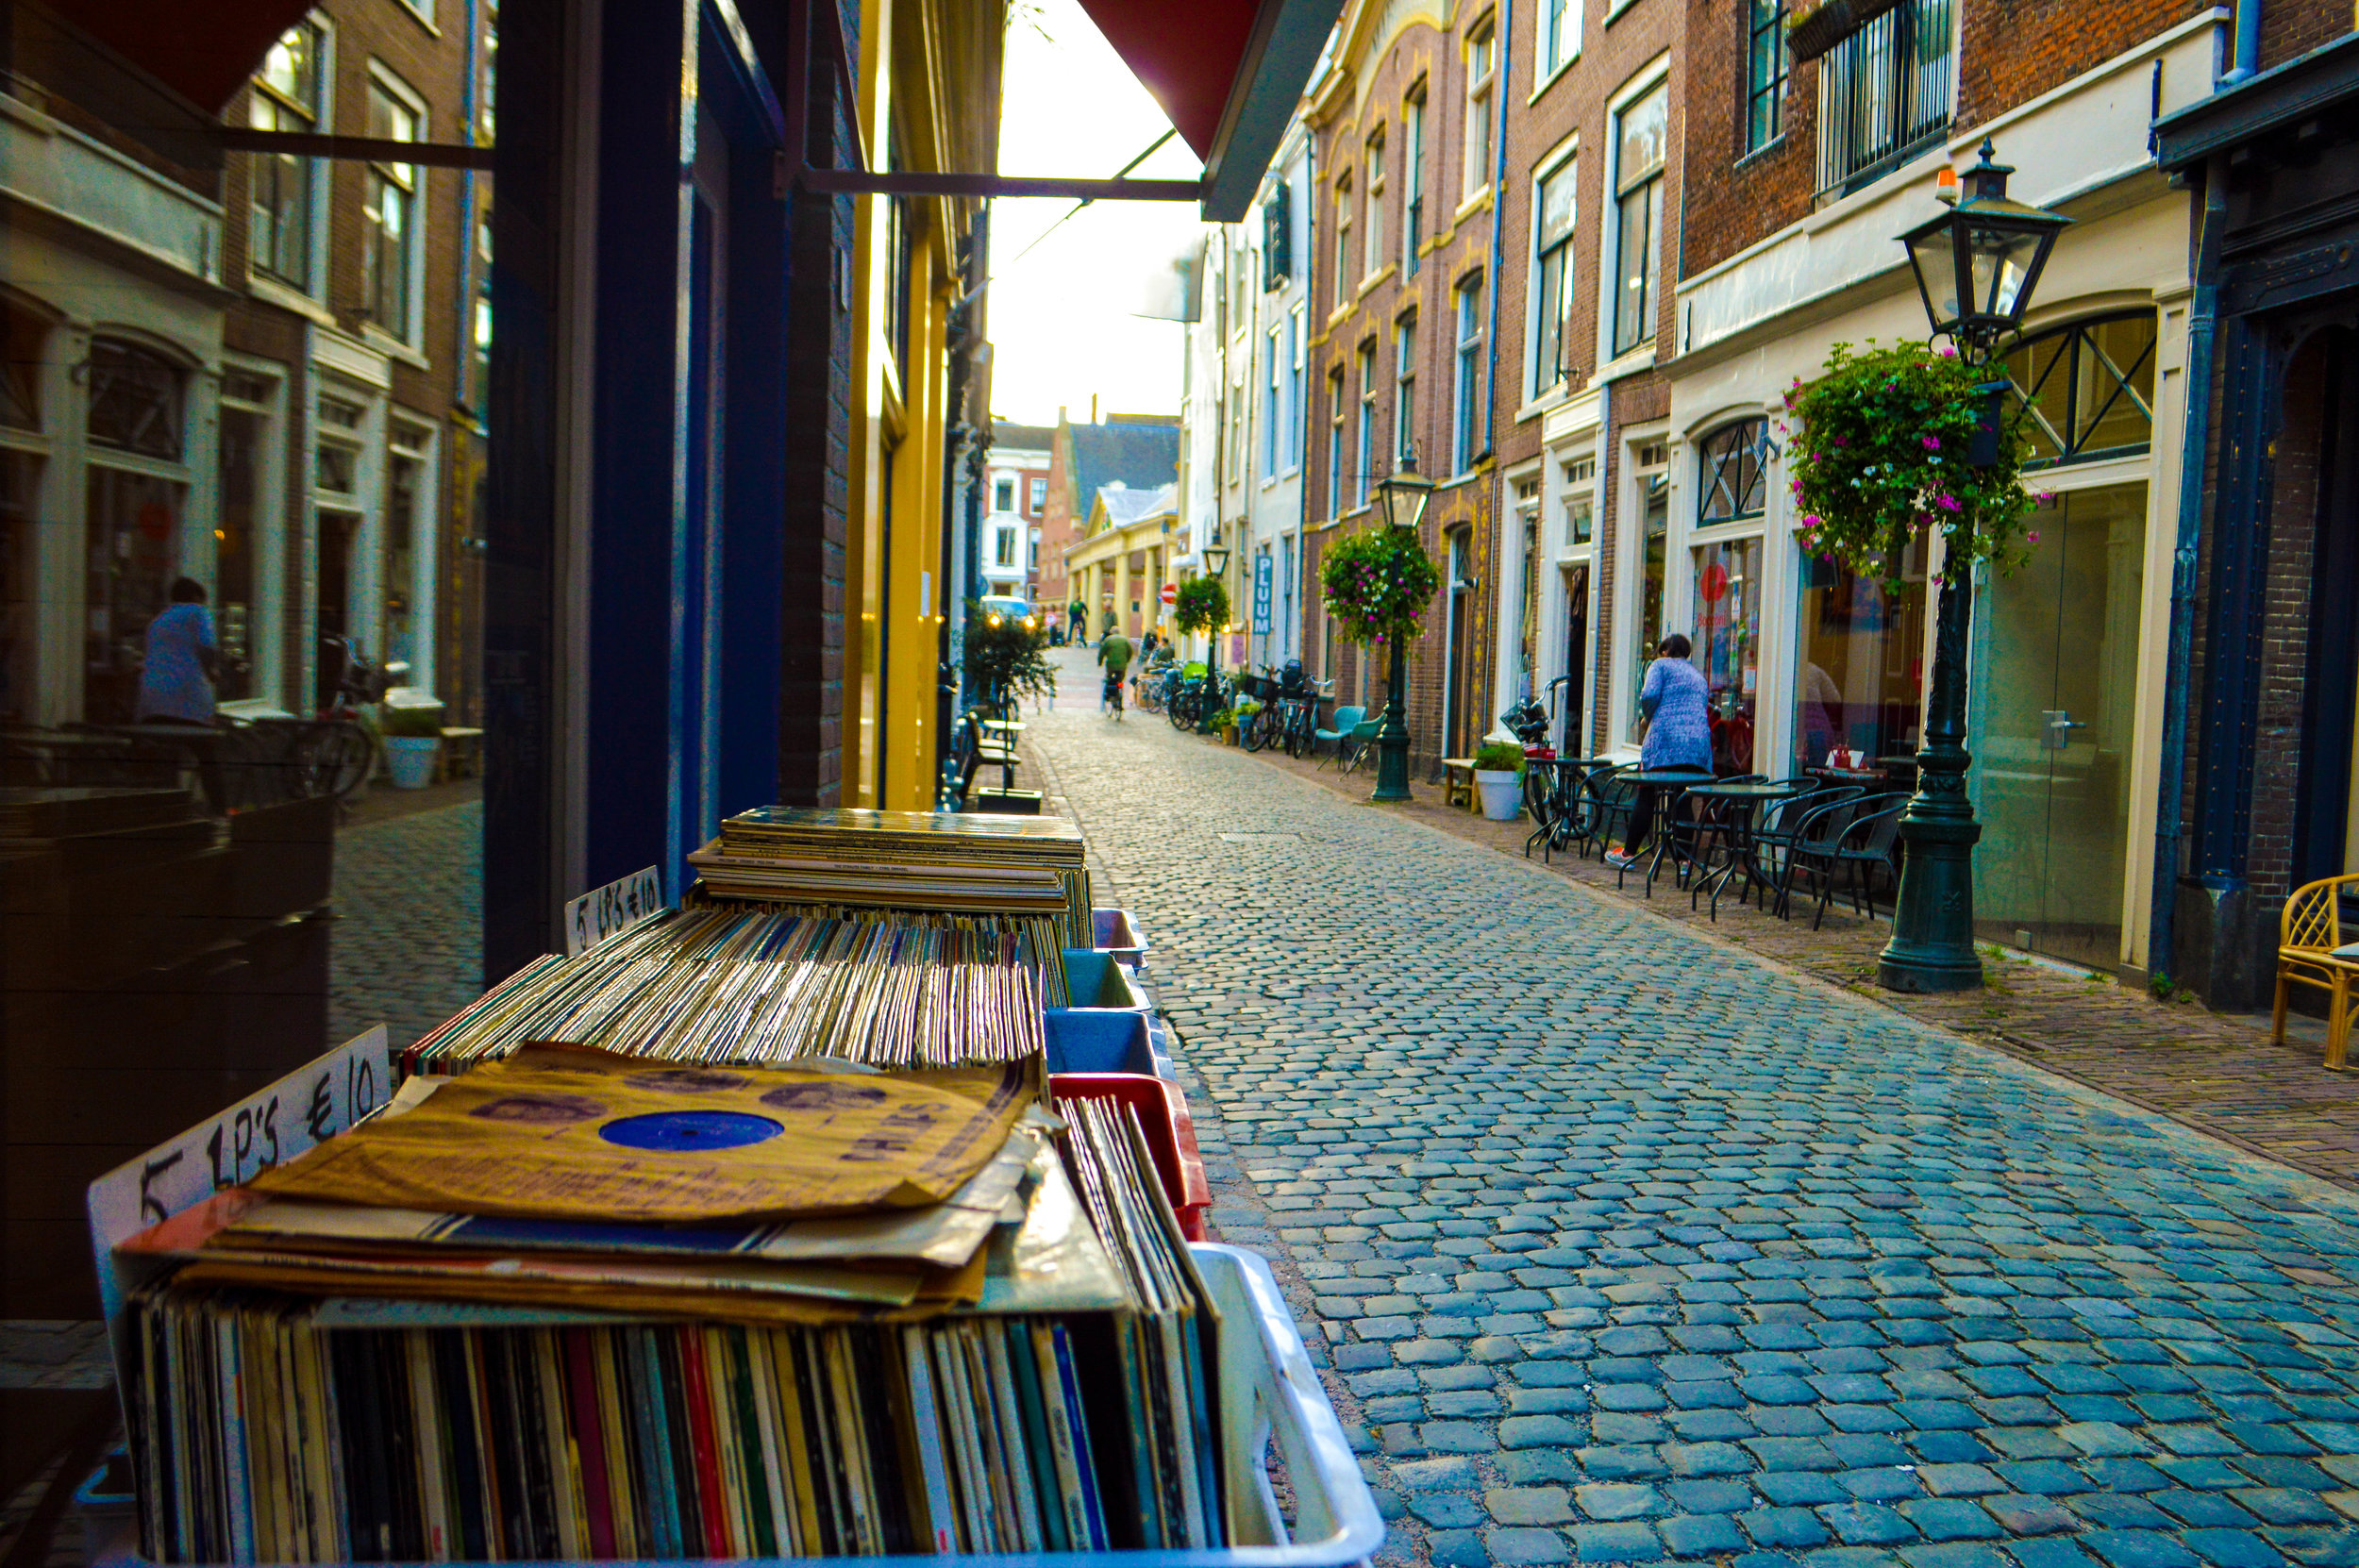 record store on street of cute street in leiden